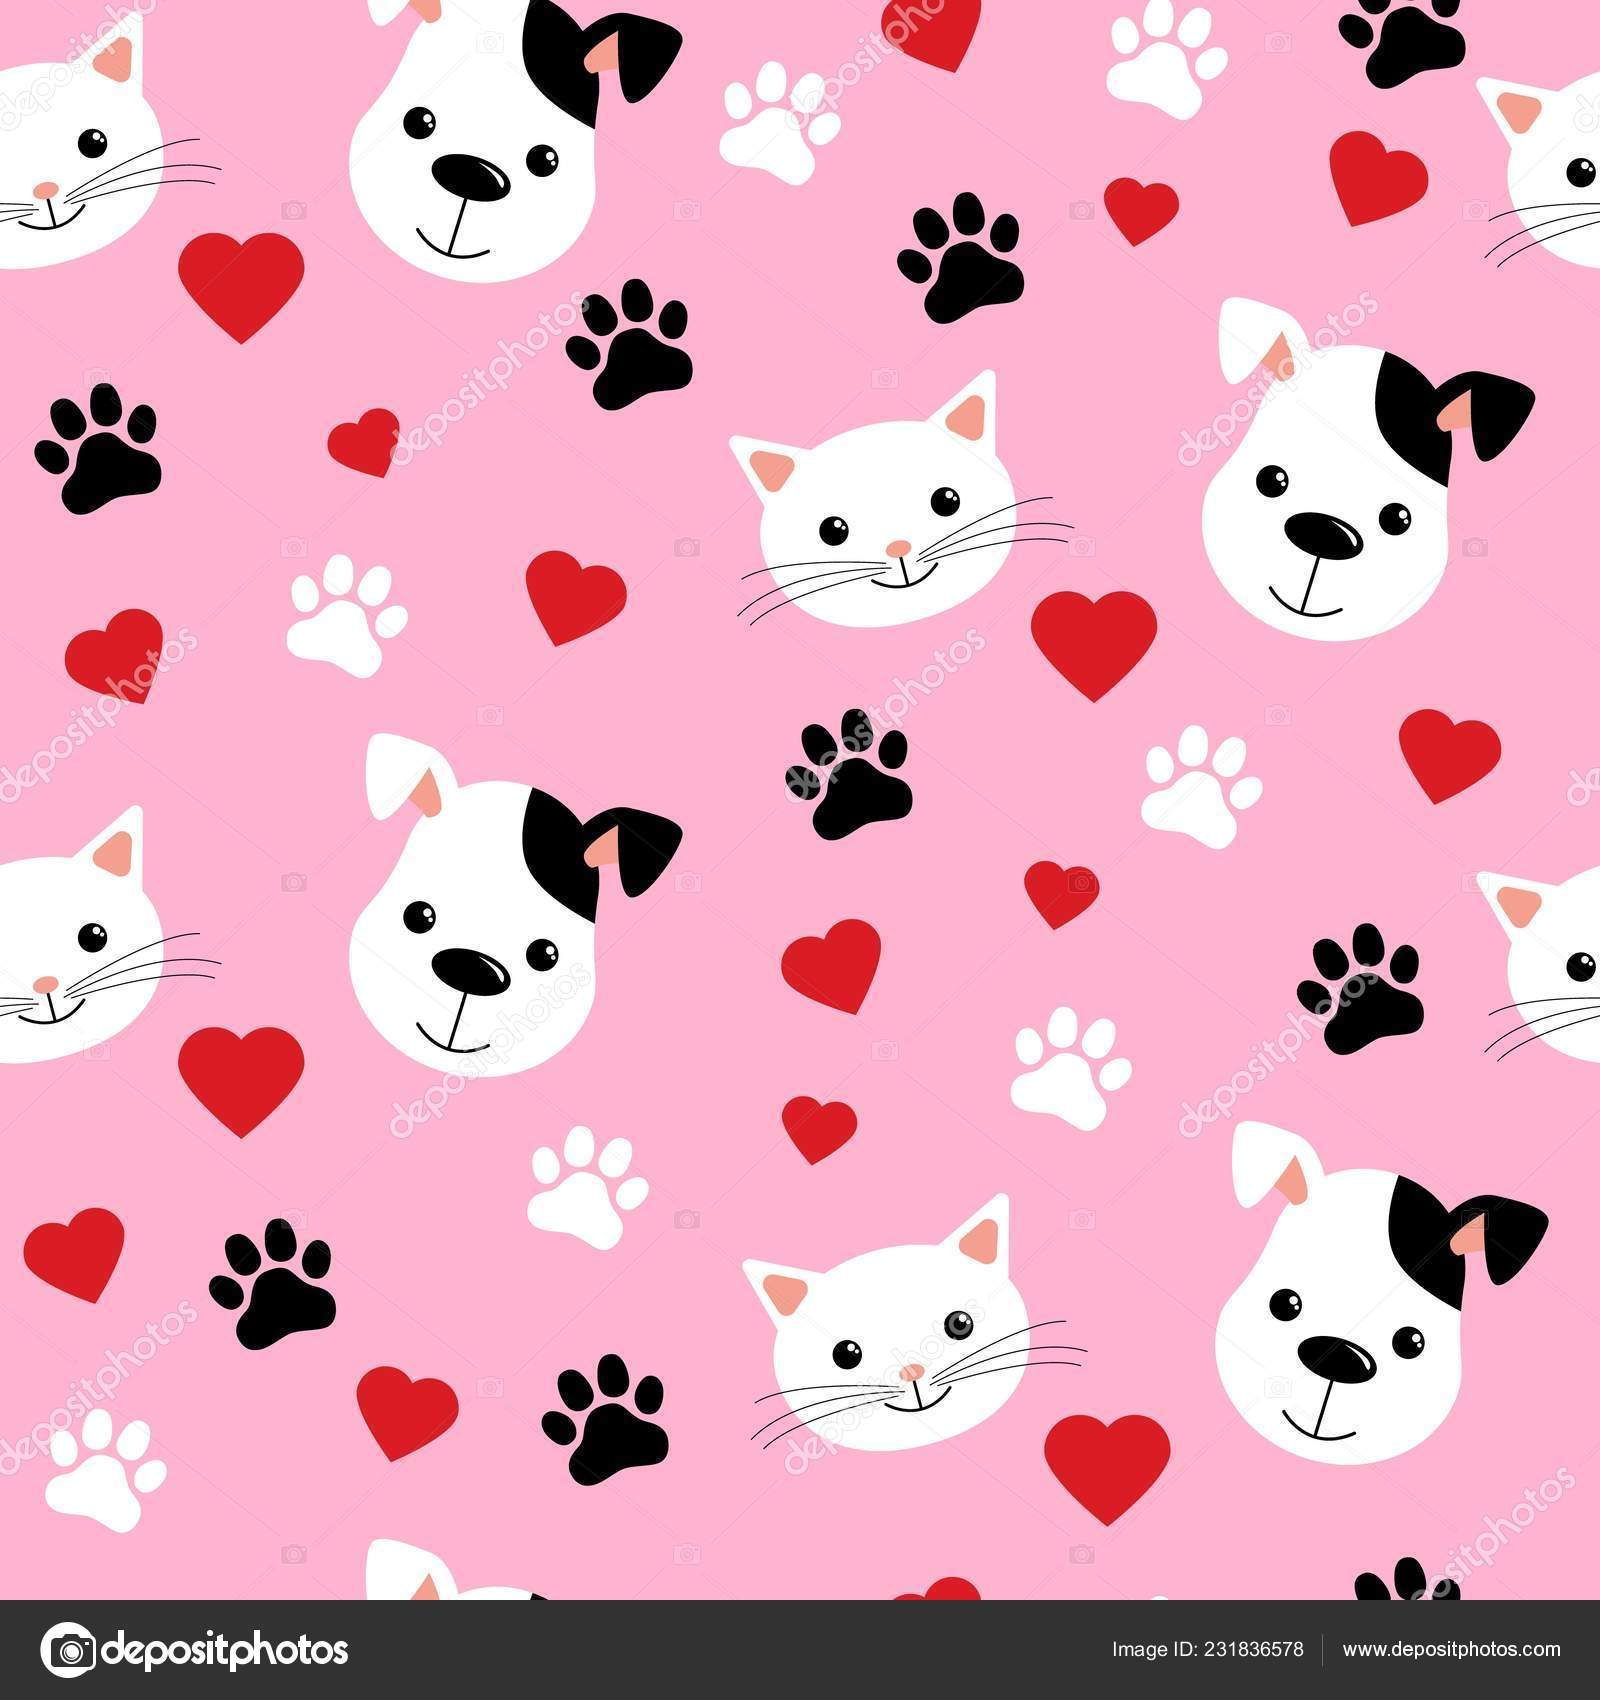 Background Cat And Dog Wallpaper Cartoon Cats And Dogs Seamless Pattern Showing Cute Cat And Dog For Pets Friendship Or Wallpaper Design Stock Vector C Yuliar 231836578